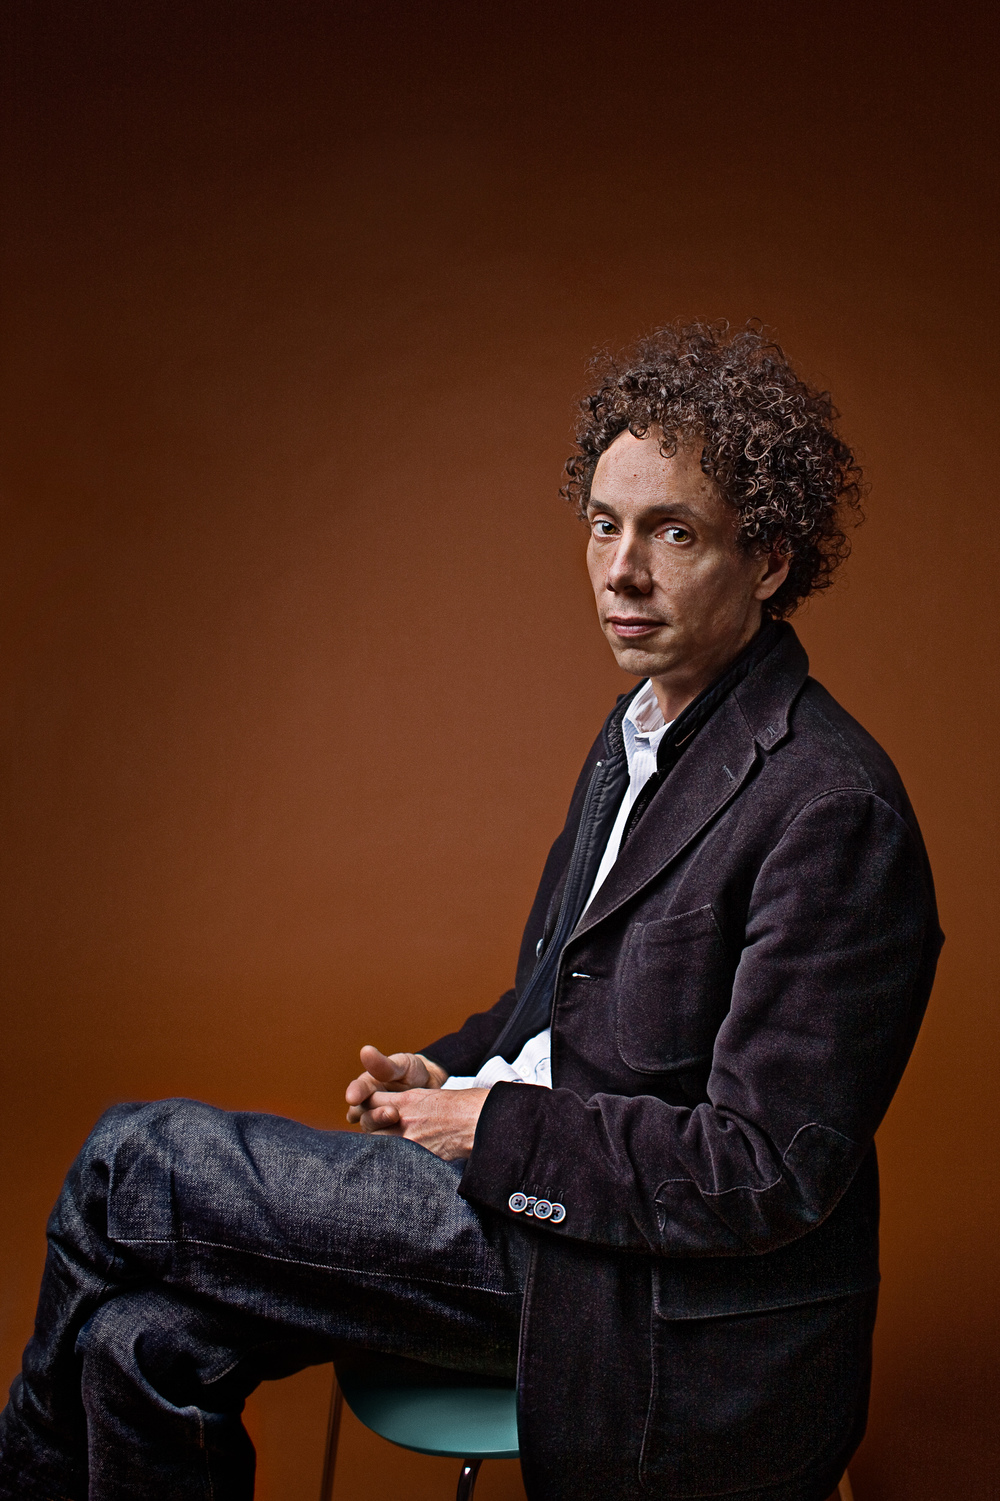 Malcolm Gladwell - Author